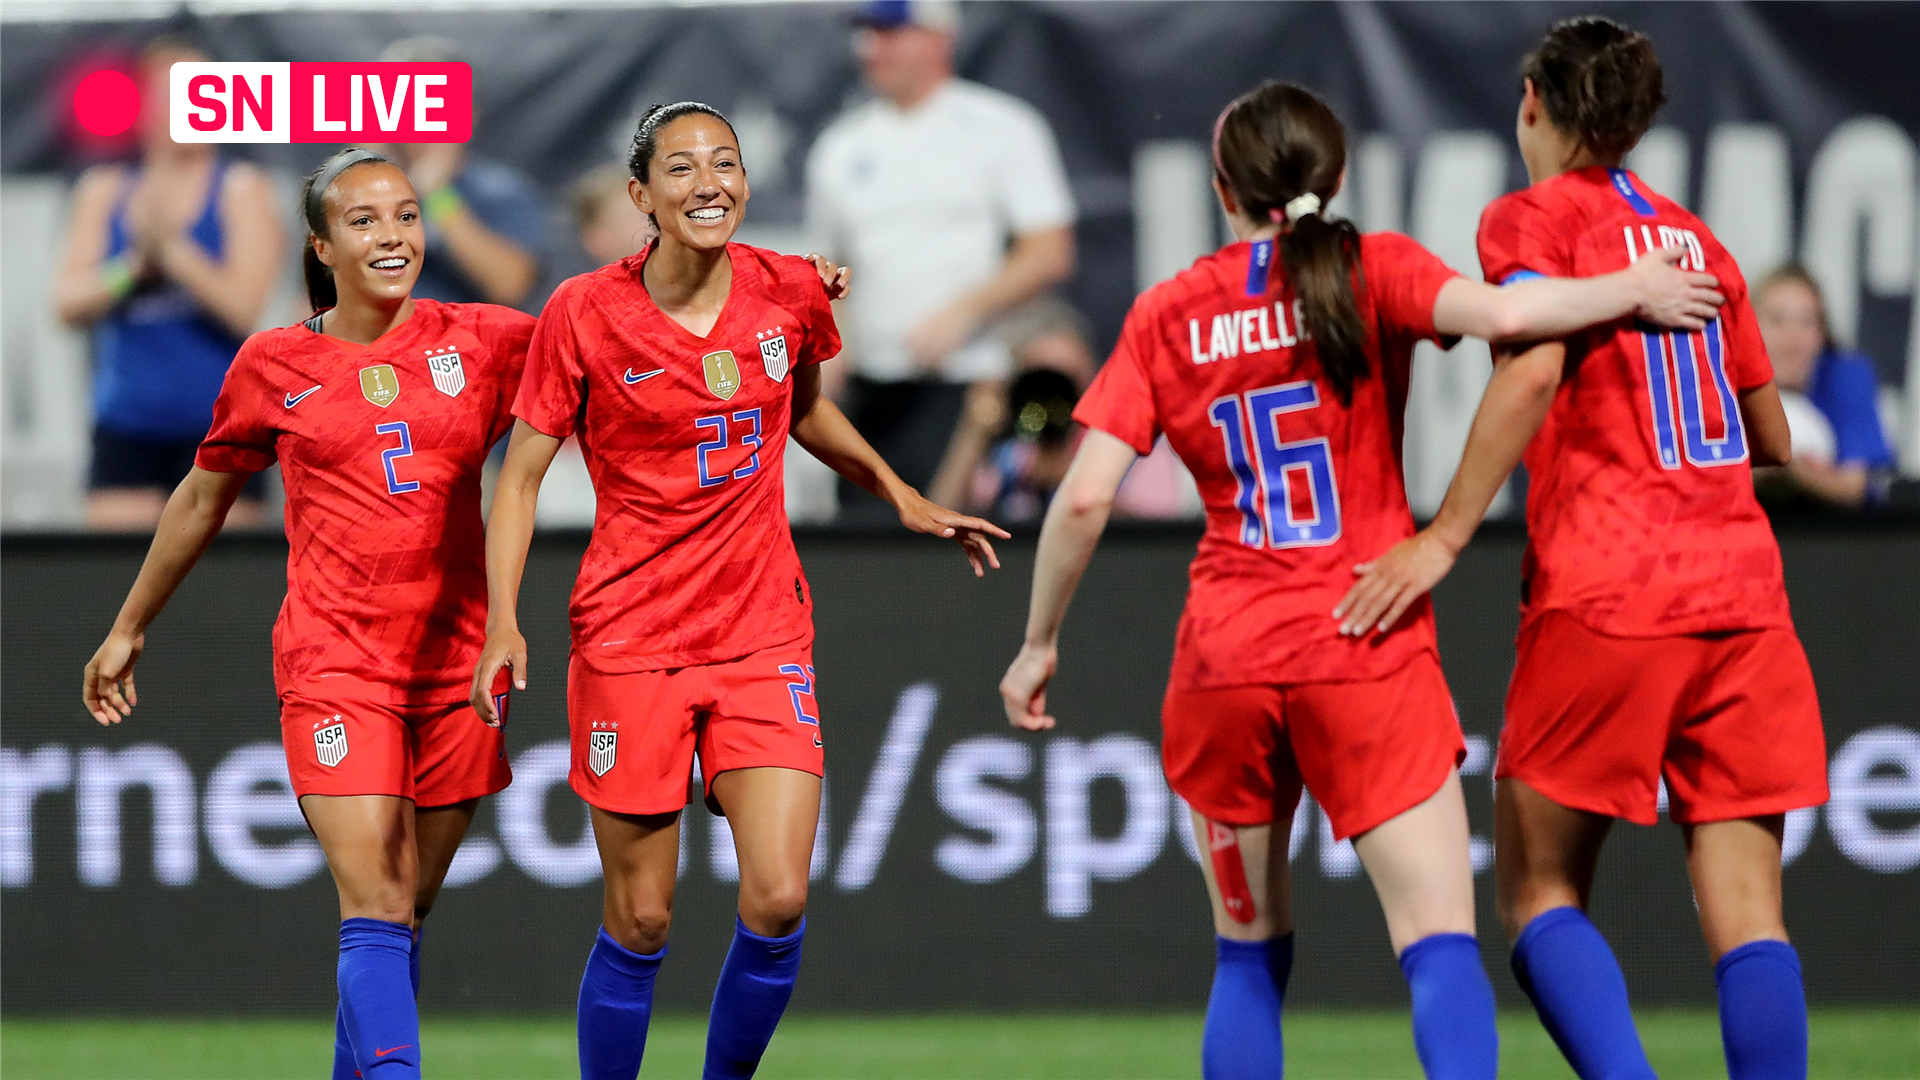 USWNT vs. Thailand: Live score, updates, highlights from USA's World Cup match